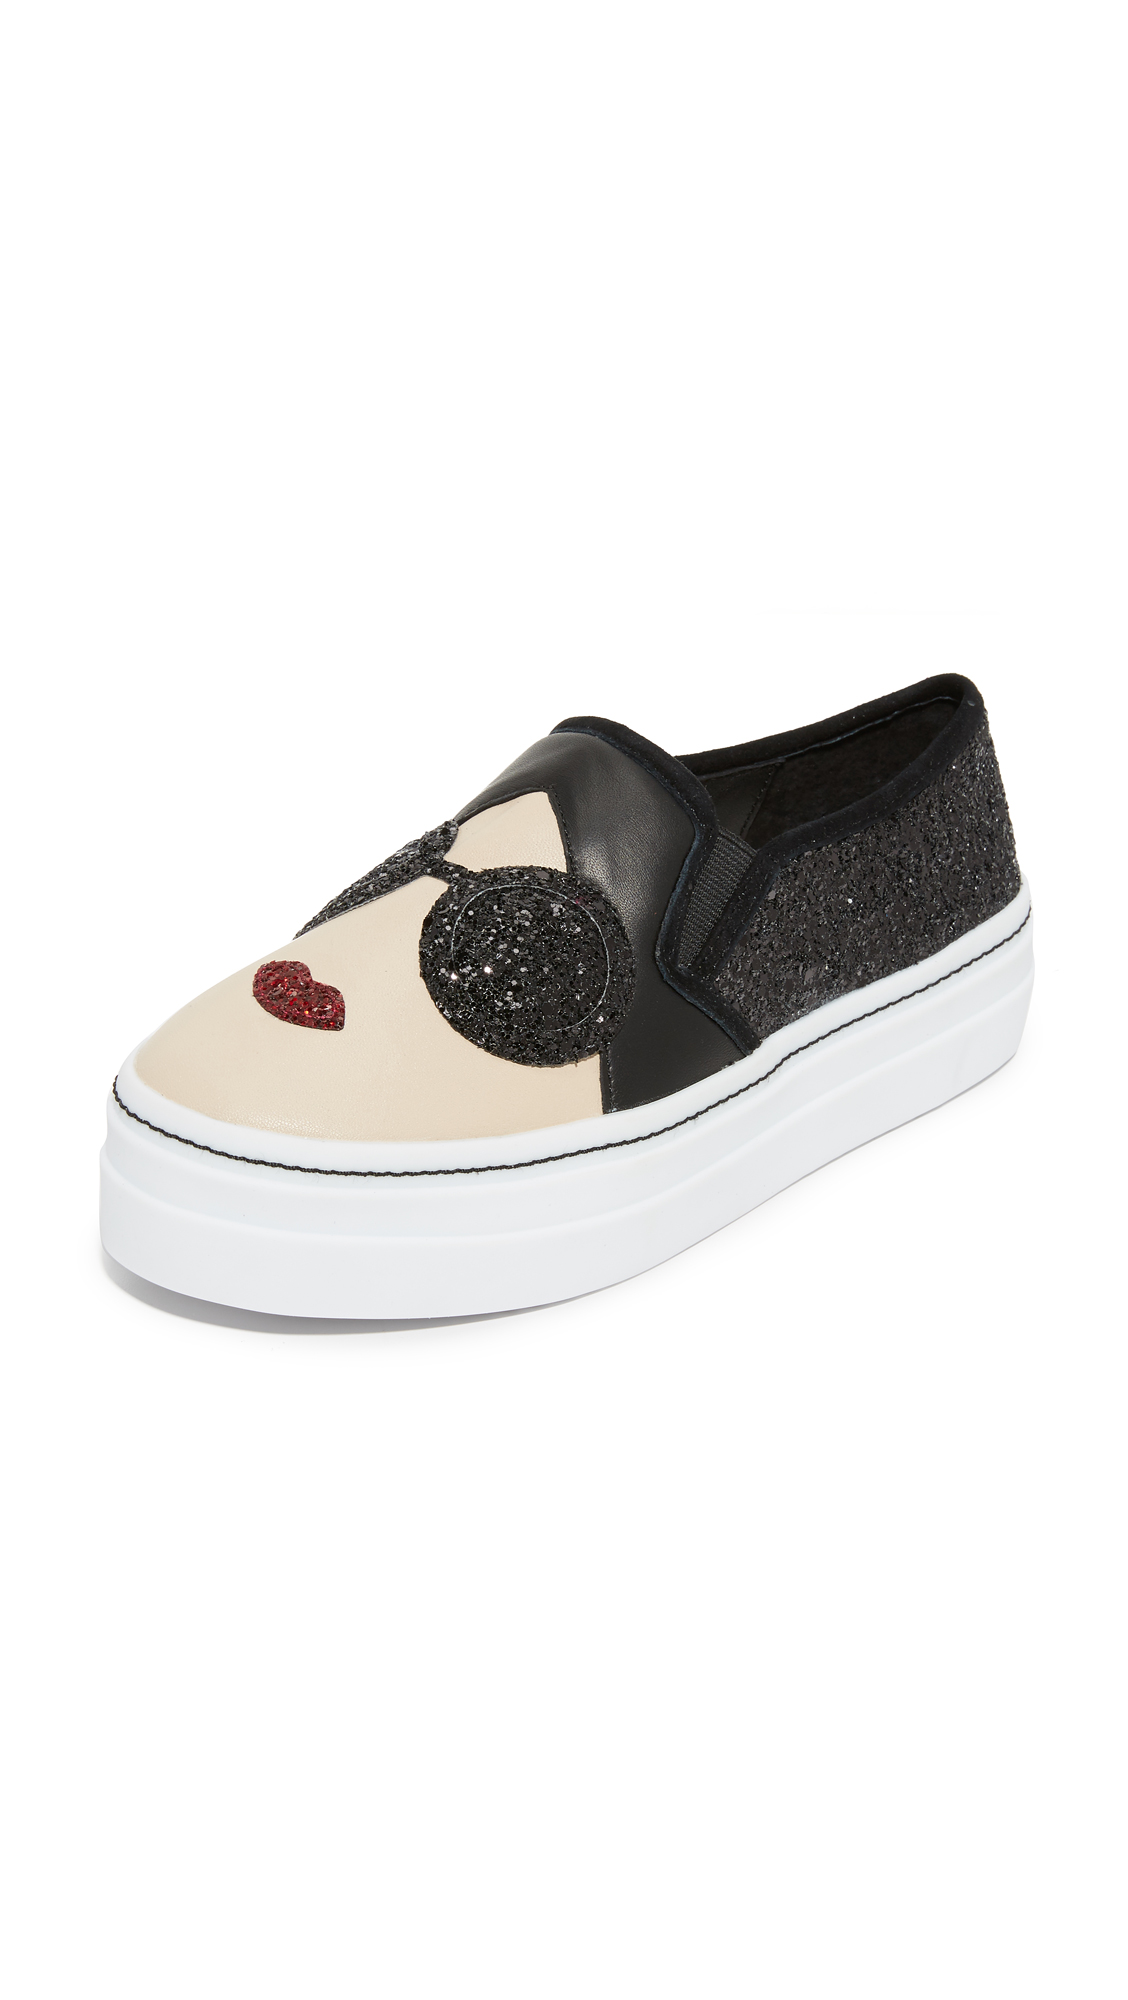 Alice + Olivia Stace Sofia Slip On Sneakers - Black Glitter at Shopbop